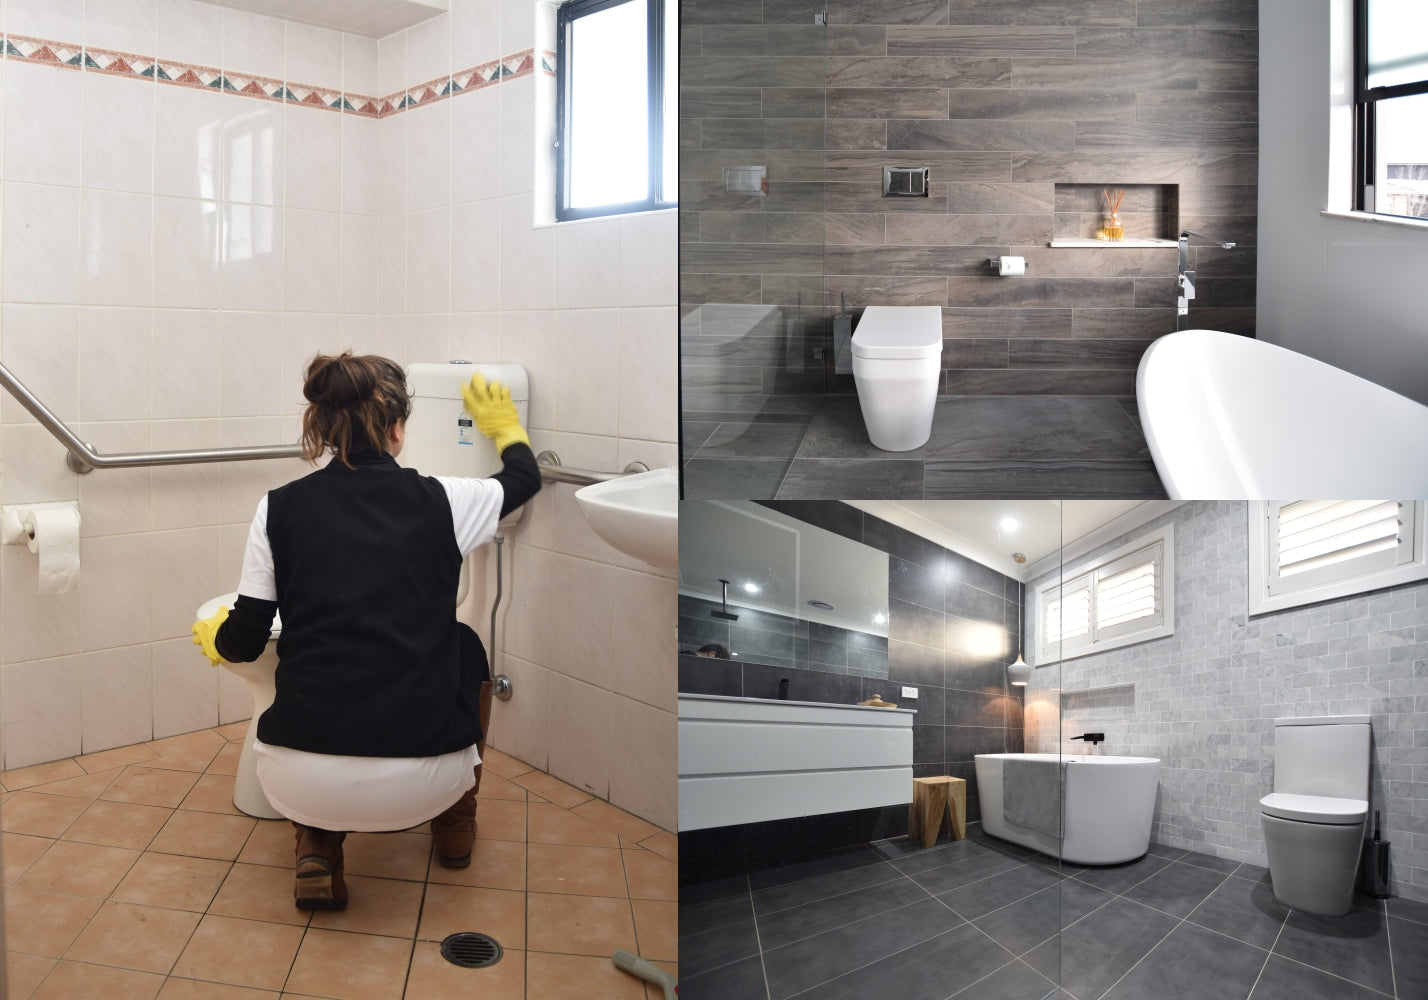 How to Make Your New Bathroom Easy to Clean by Design – 5 tips ...